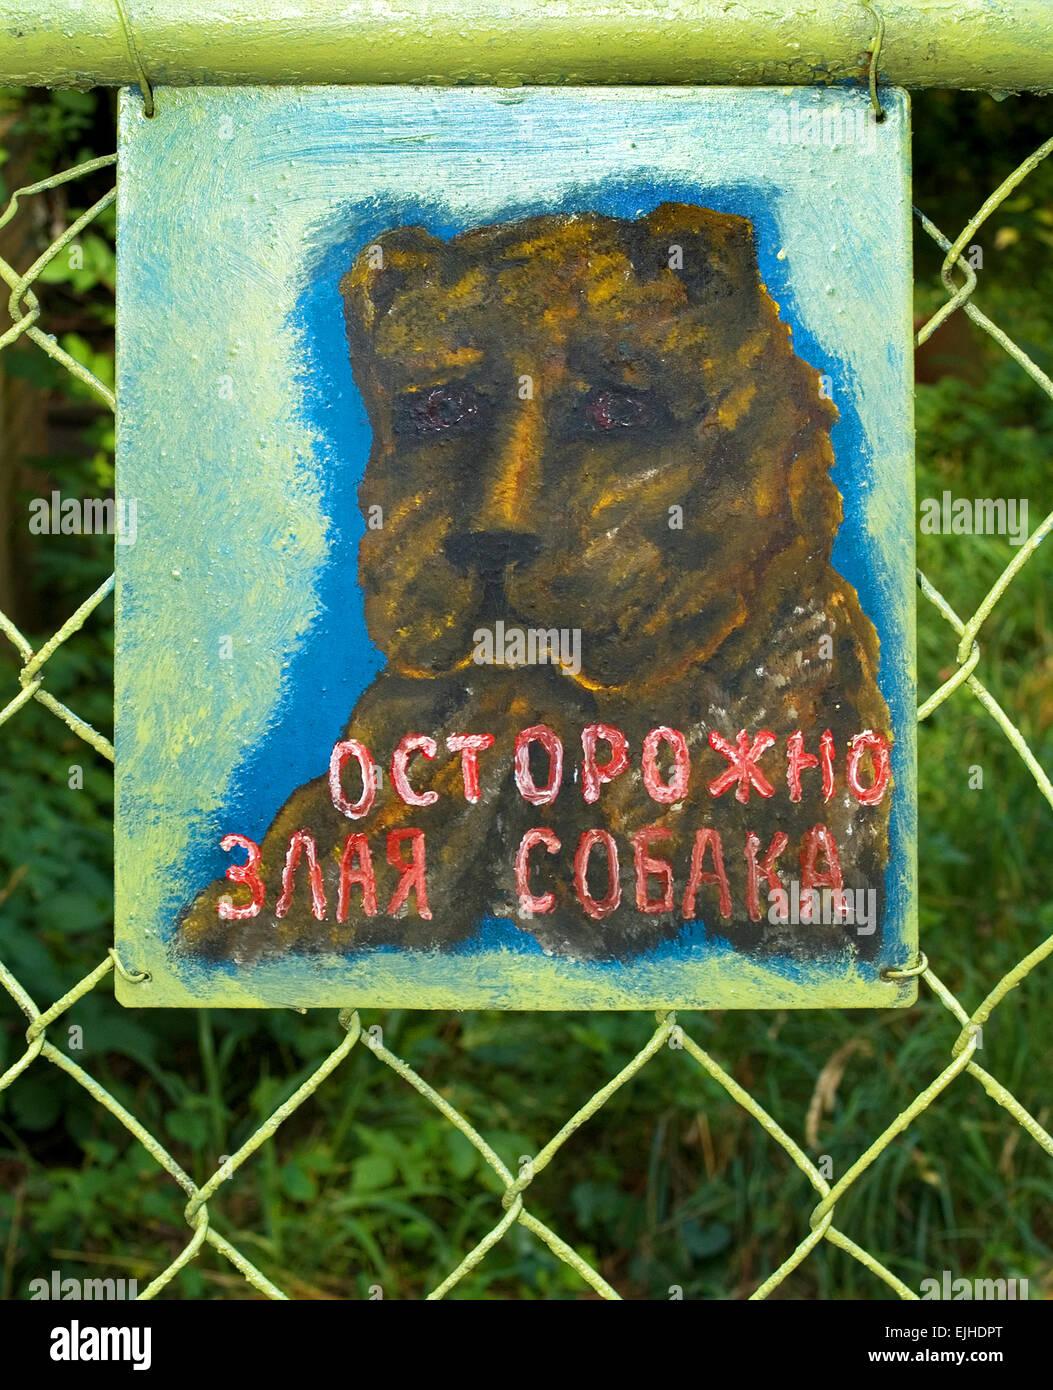 The inscription on the fence cautiously angry dog. - Stock Image